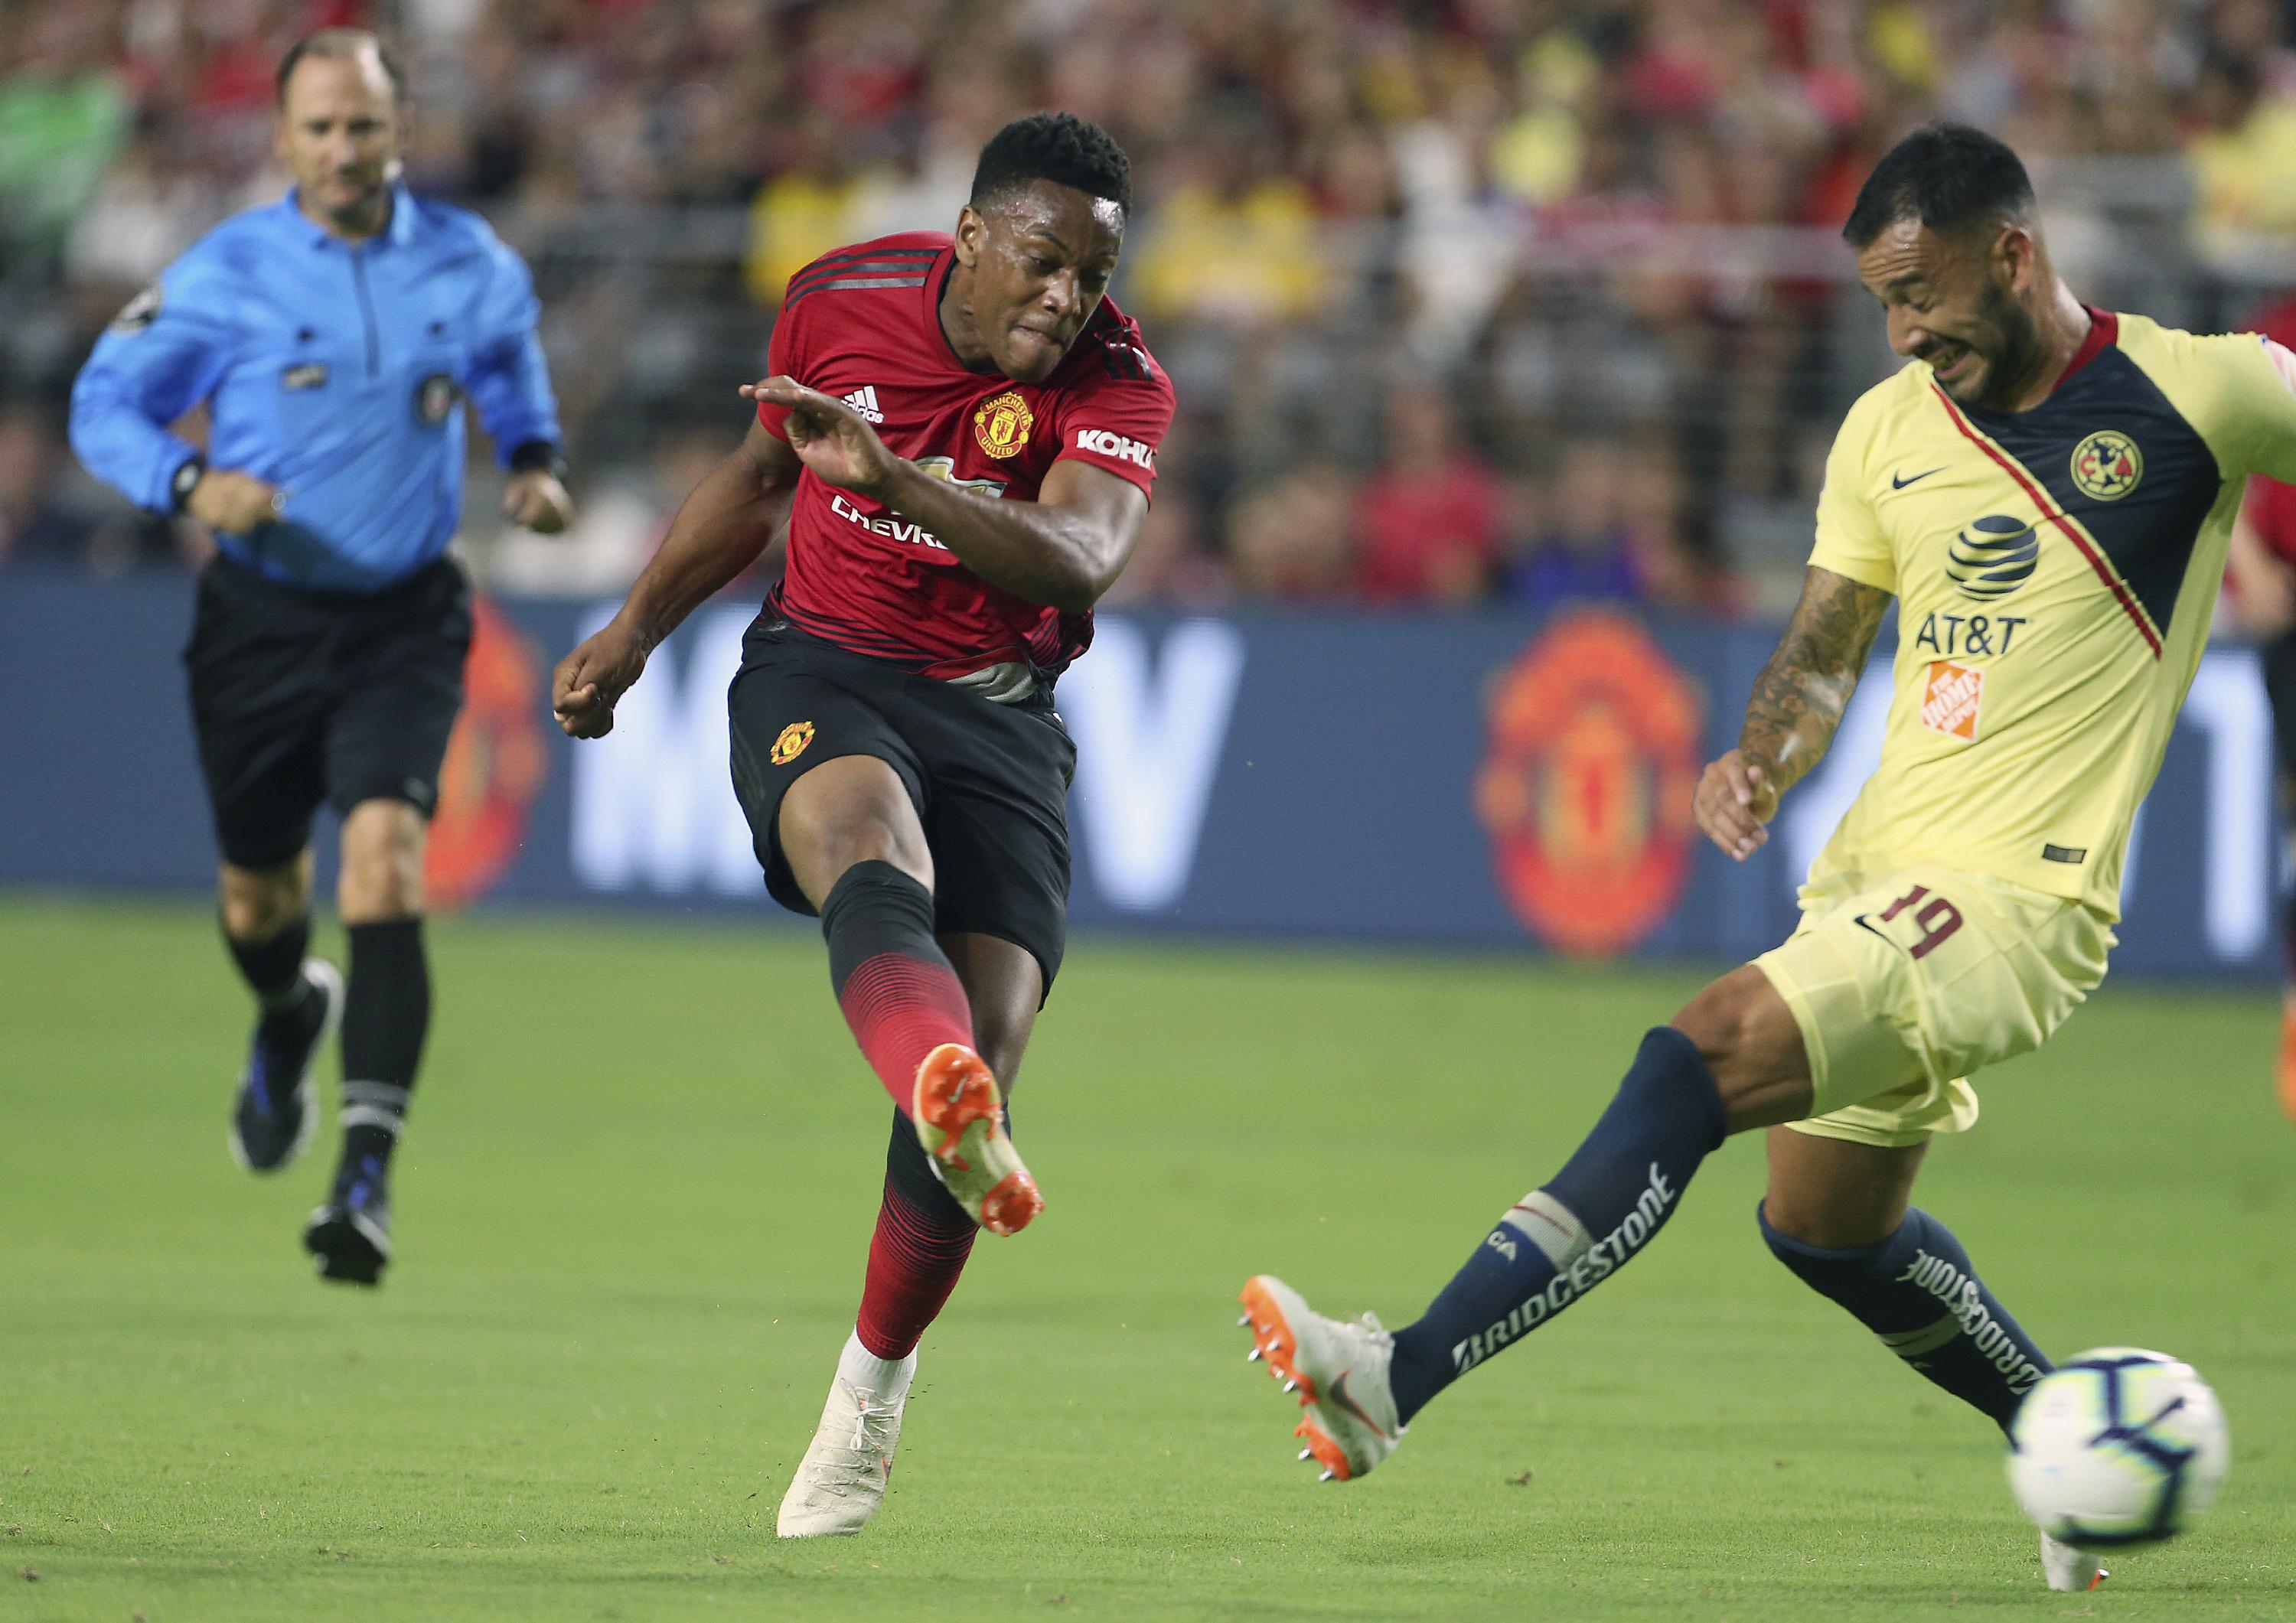 Anthony Martial looked dangerous against Club America with Alexis Sanchez yet to link up with the squad